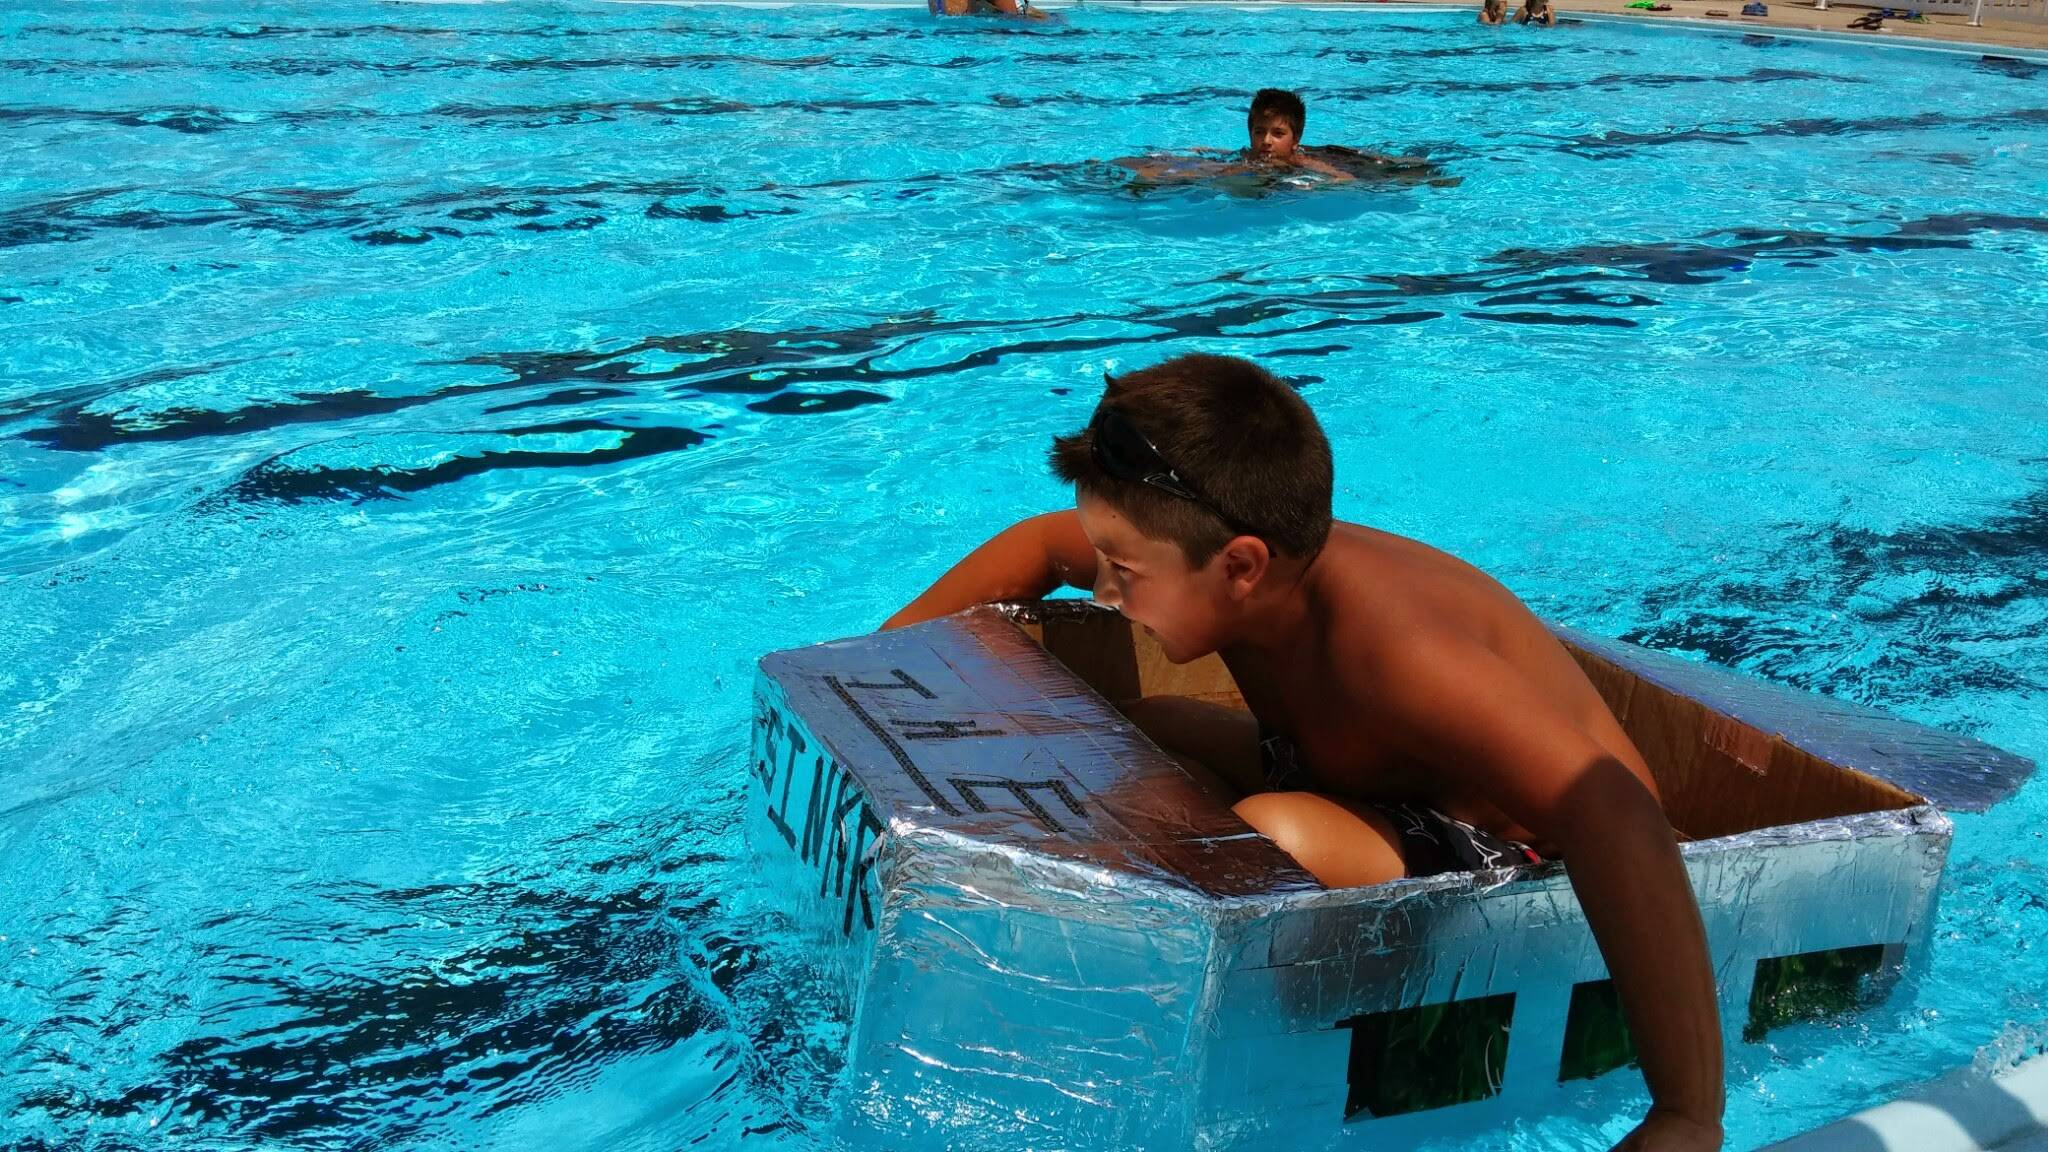 Cardboard boat racers are invited to compete in Addison's Build a Boat contest at the outdoor pool in Community Park on Saturday, August 8.Braulio Herrera